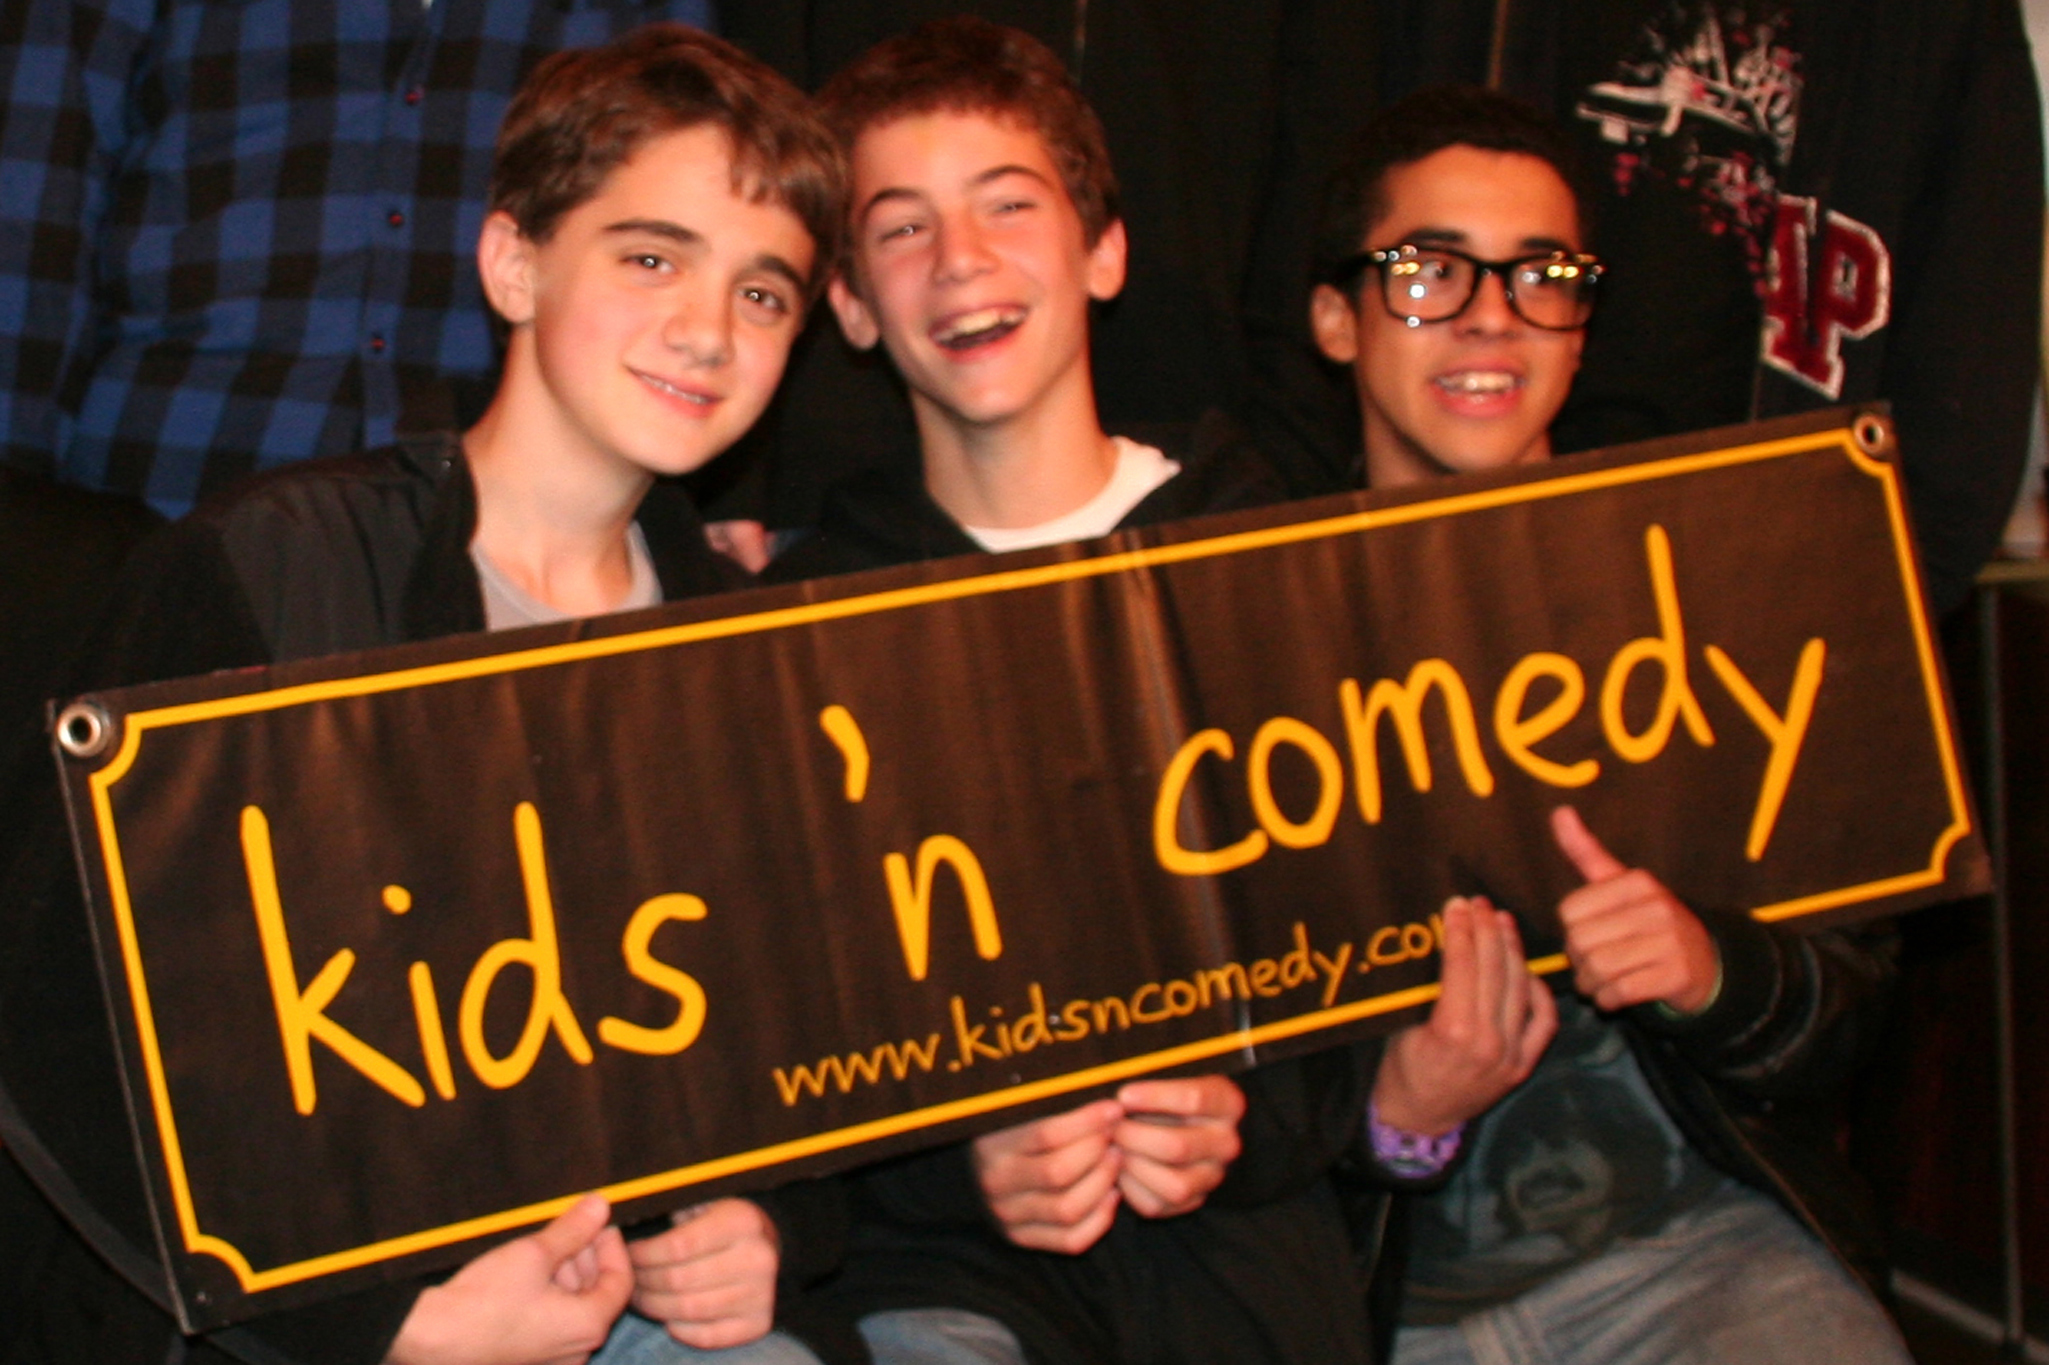 Kids 'N Comedy: Thanks, I Guess?